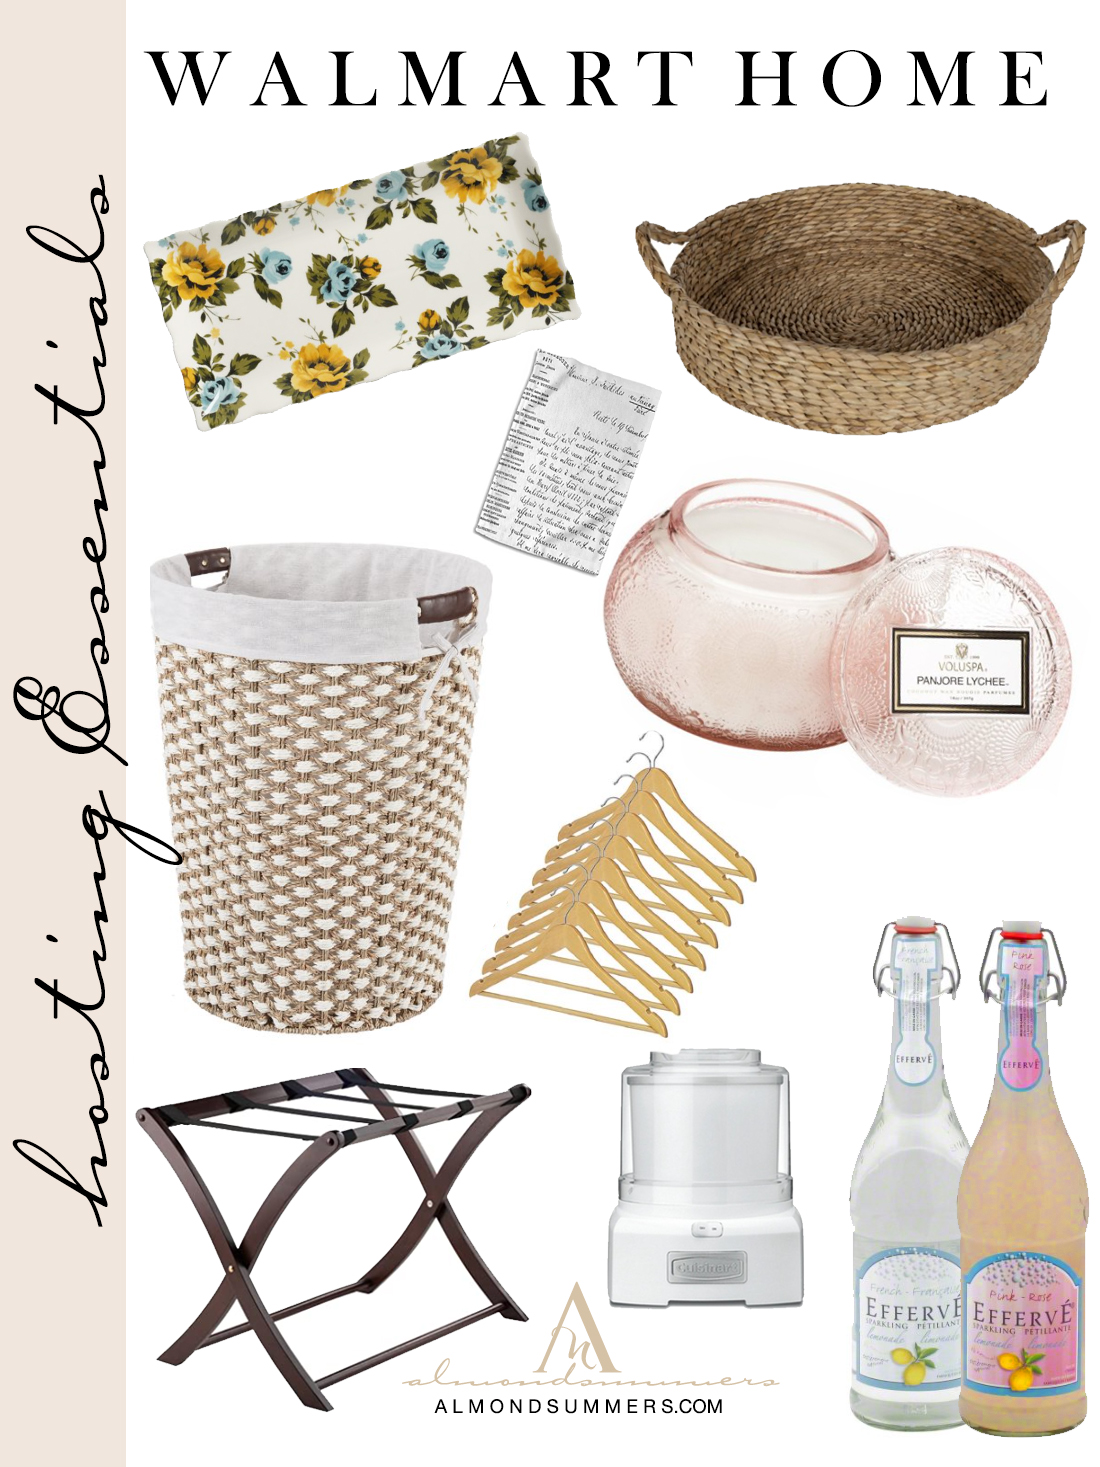 10 Tips To Prepare Your Home For Overnight Guests |Hosting houseguests Checklist| Almond Summers